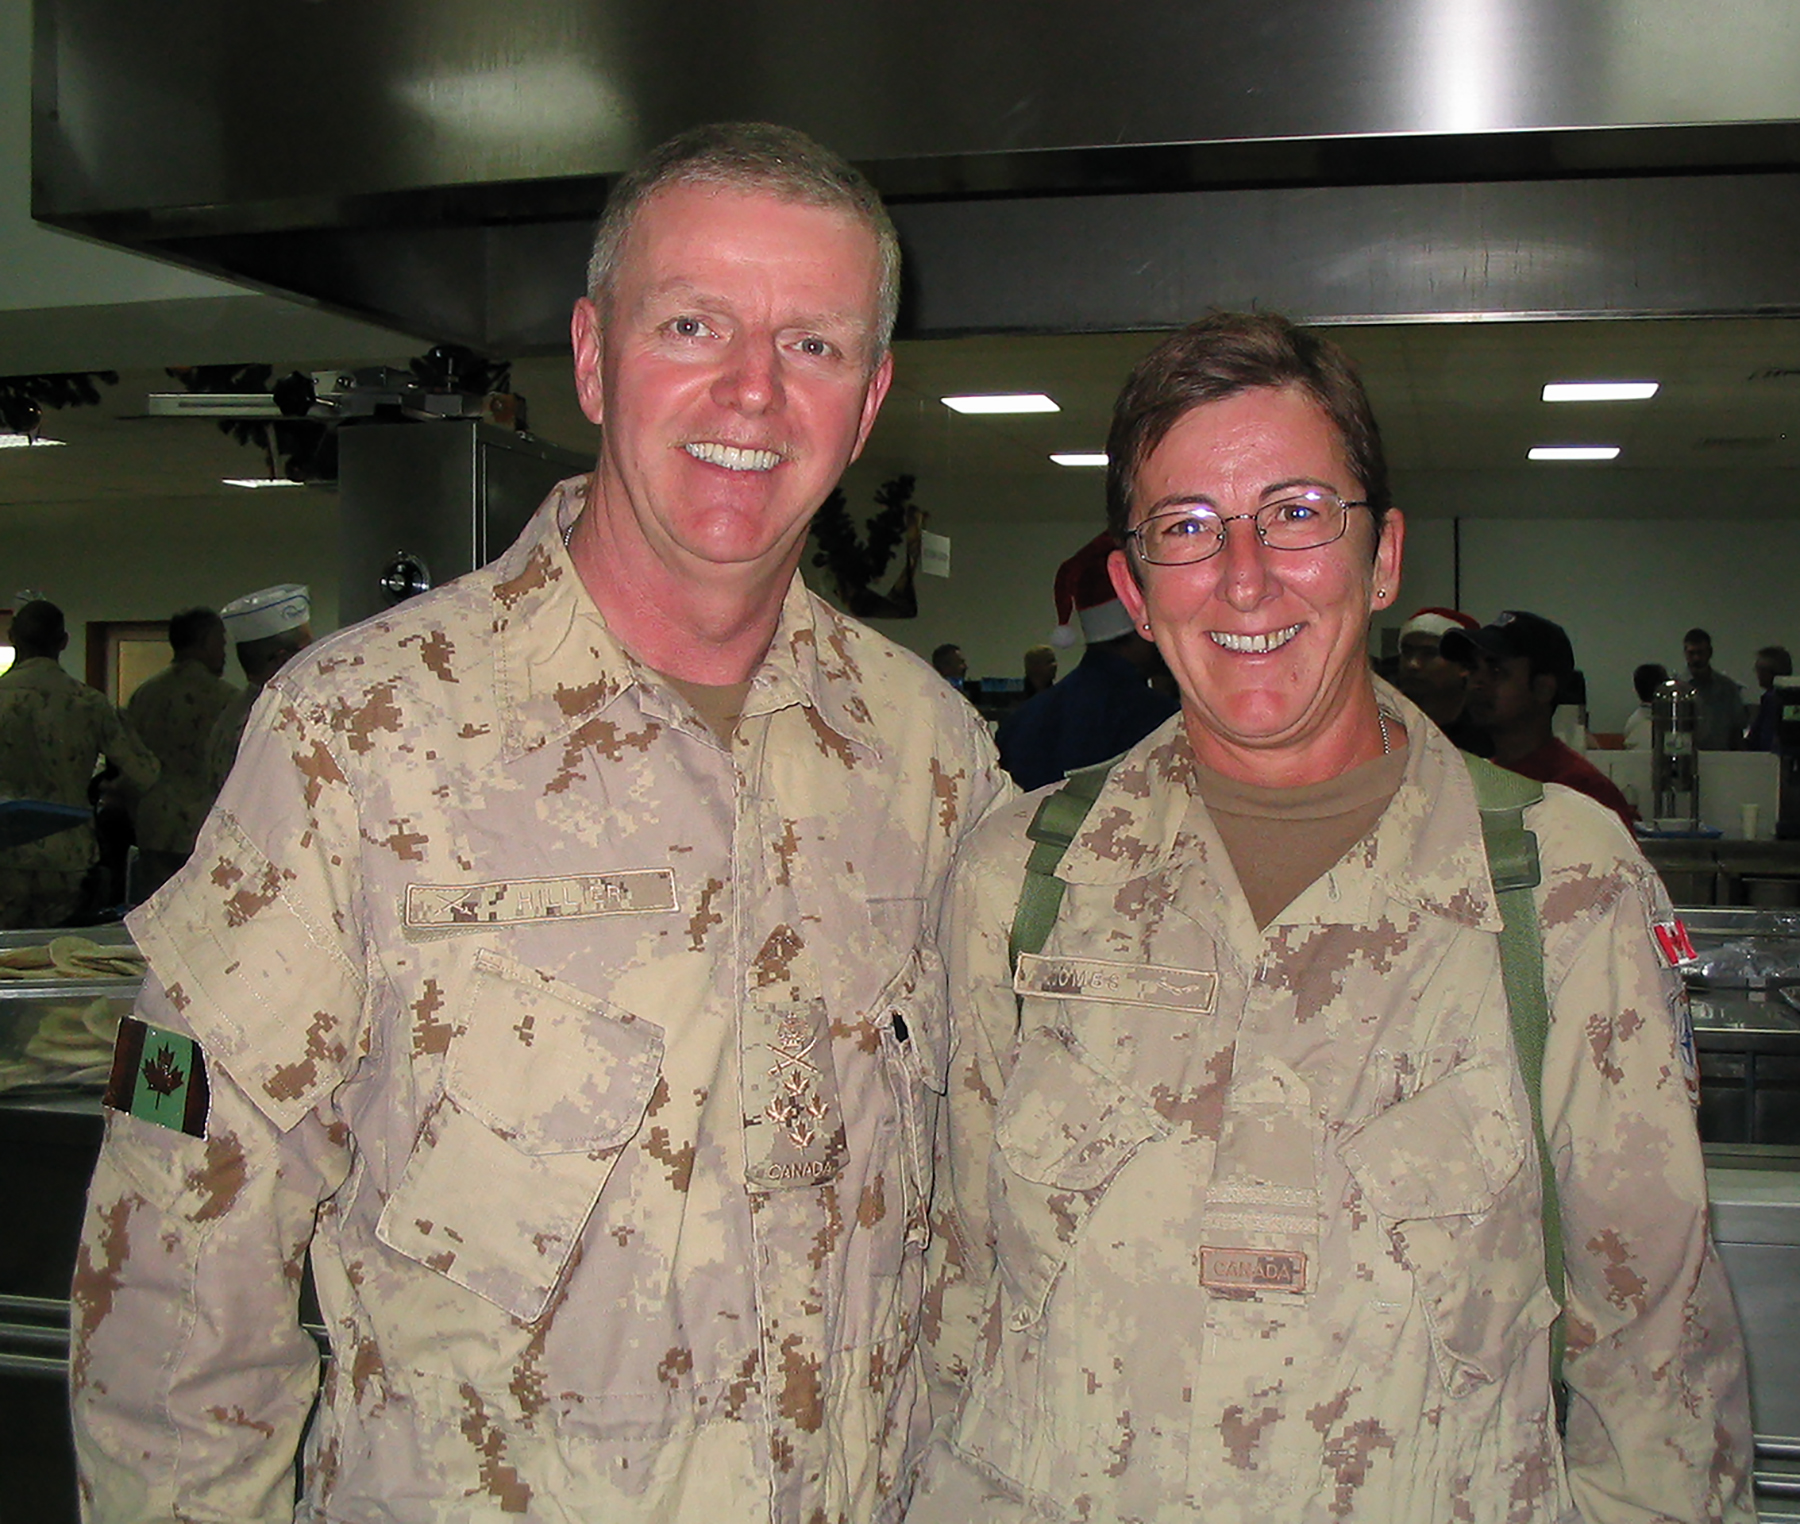 Then-Chief of the Defence Staff General Rick Hillier and Captain Cathy Coombs attend the 2007 Christmas Dinner in Afghanistan. PHOTO: Submitted